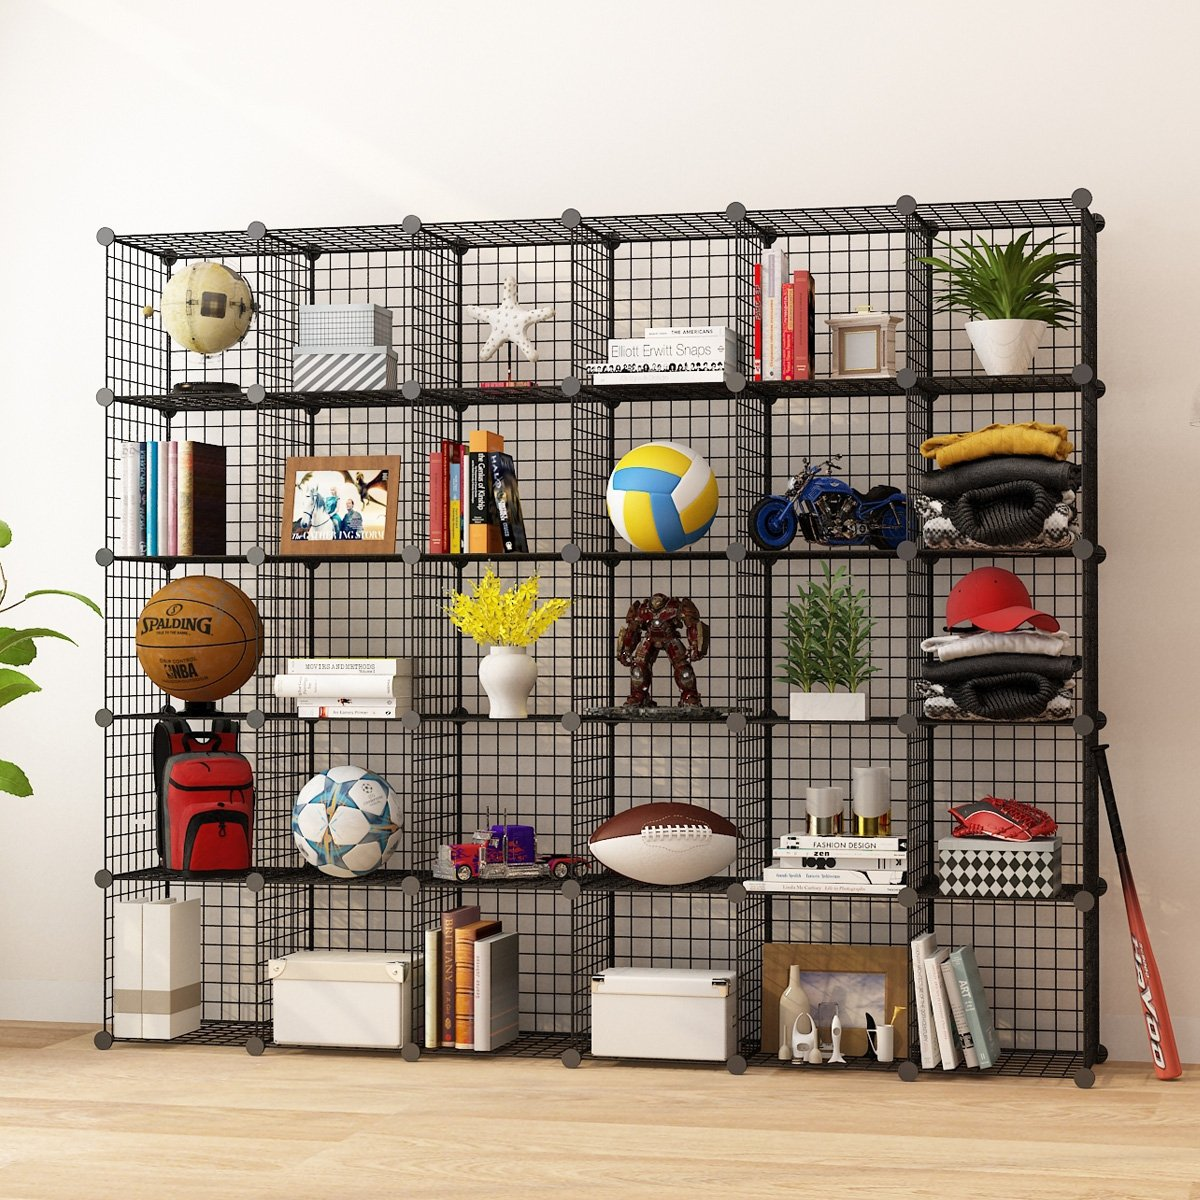 KOUSI Storage Cubes Wire Grid Modular Metal Cubbies Organizer Bookcases and Book Shelves Origami Multifunction Shelving Unit, Capacious & Customizable, Black, 30 Cubes